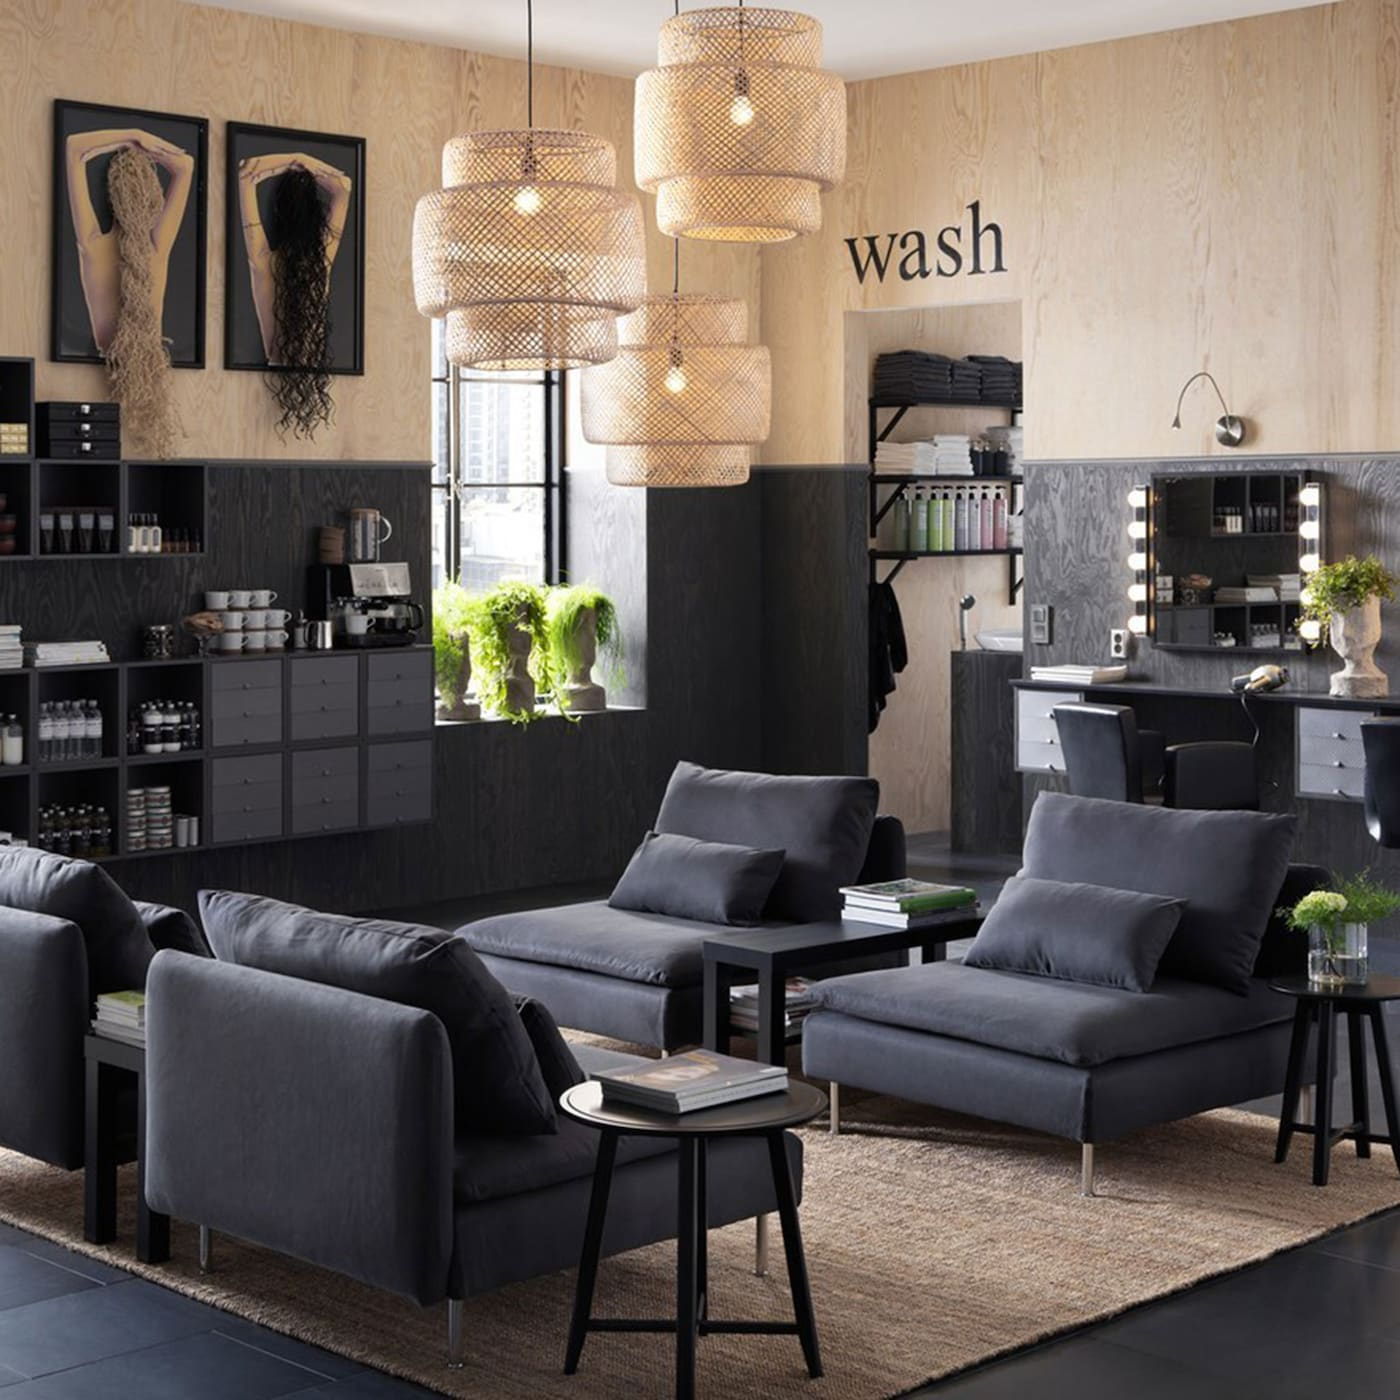 A hair salon furnished with low SÖDERHAMN dark grey armchairs and wall cabinets displaying shampoos.